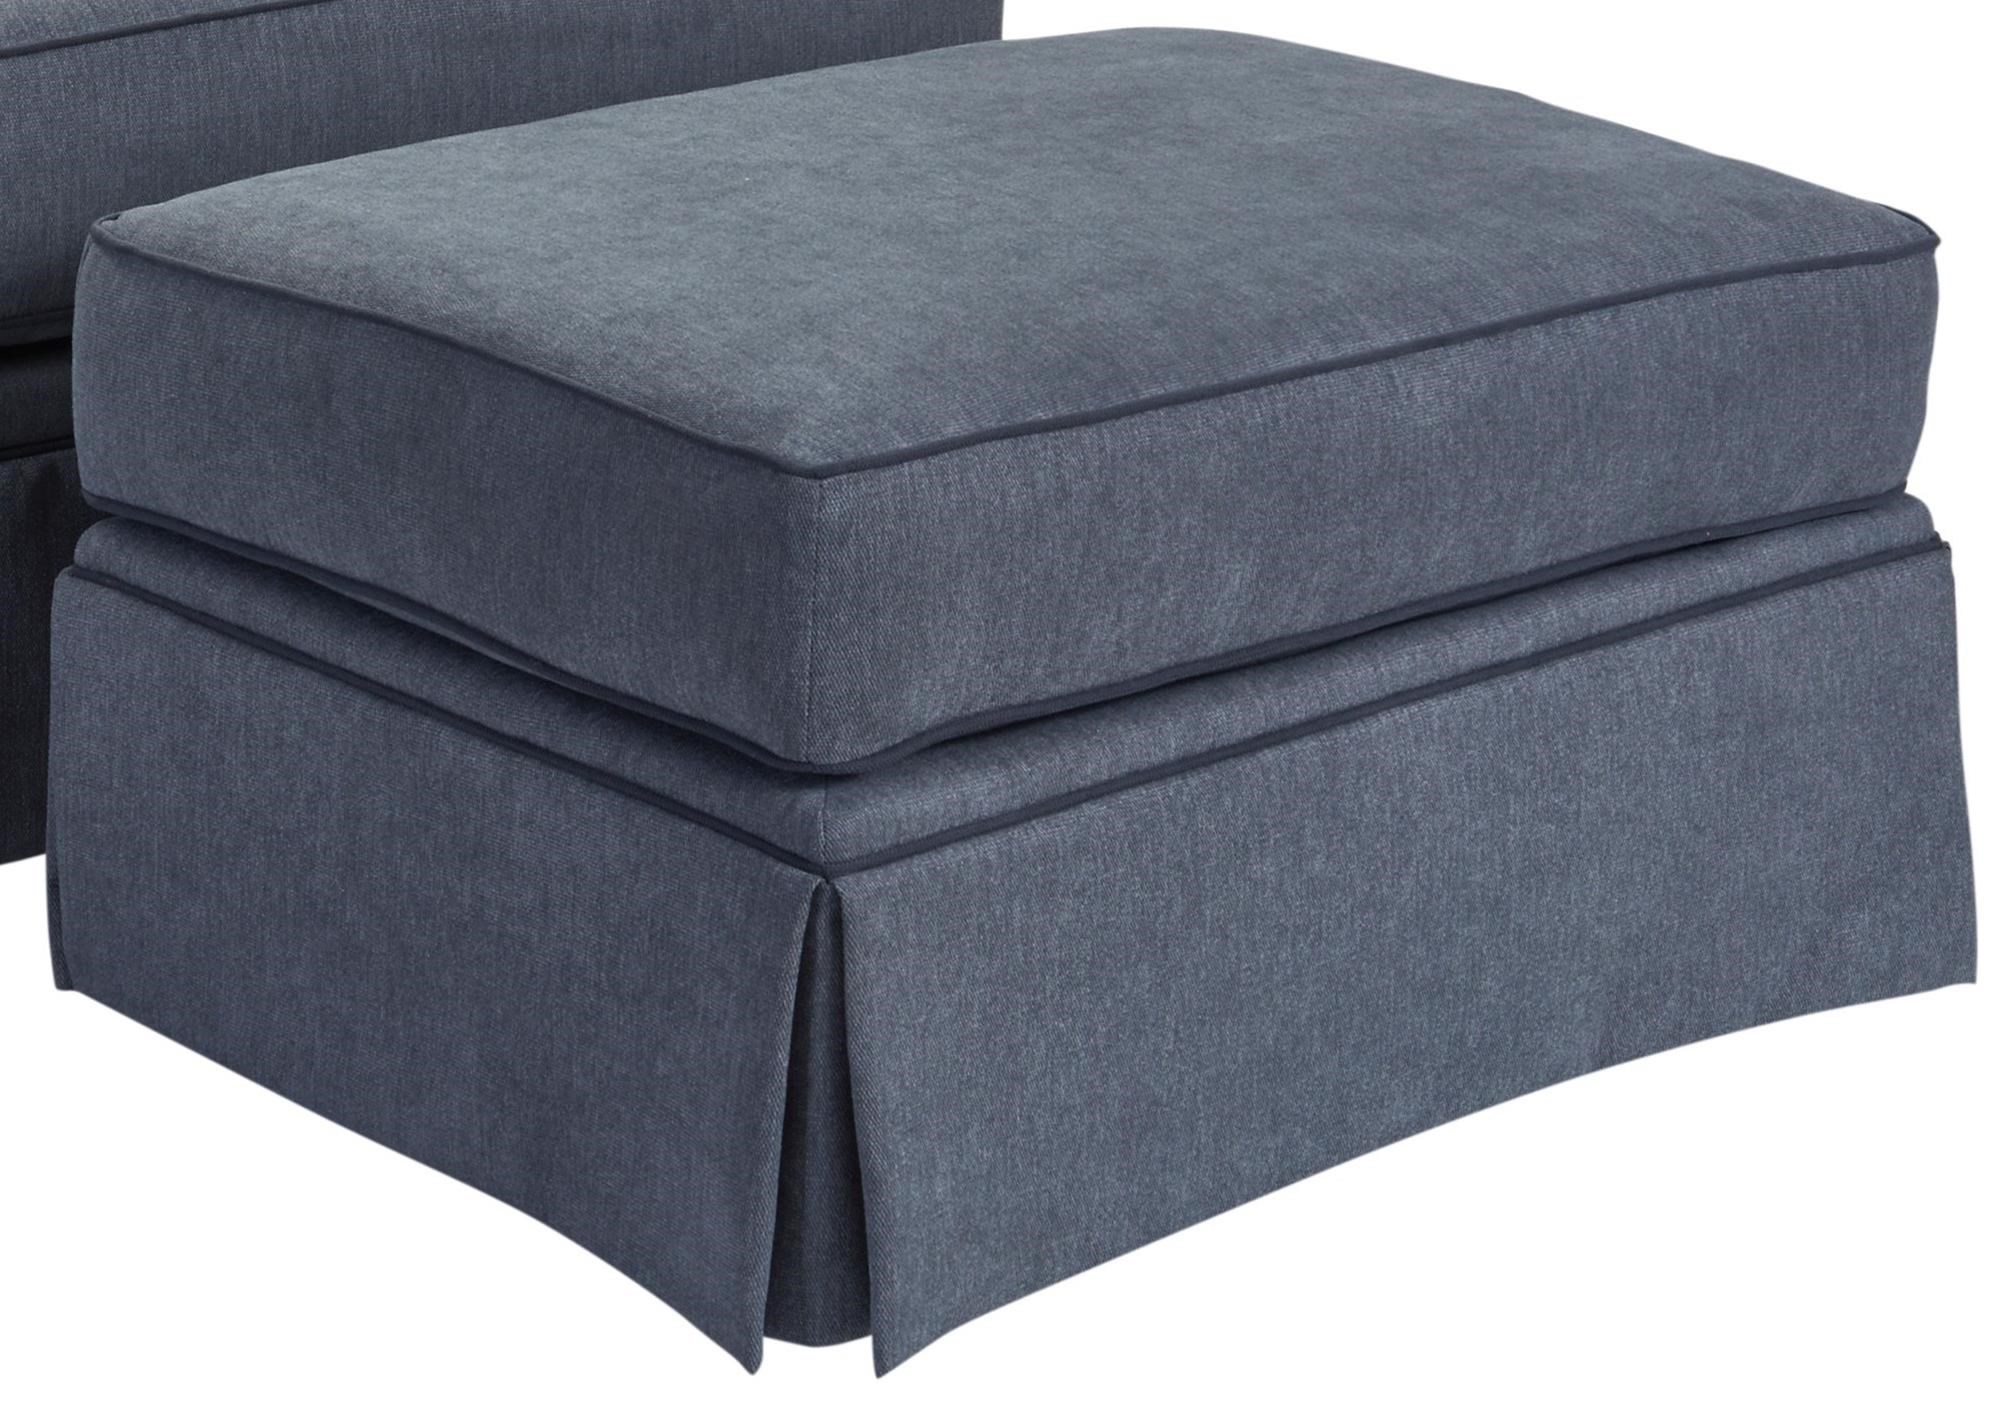 Broyhill Furniture Emily Ottoman - Item Number: 6262-5-4022-44